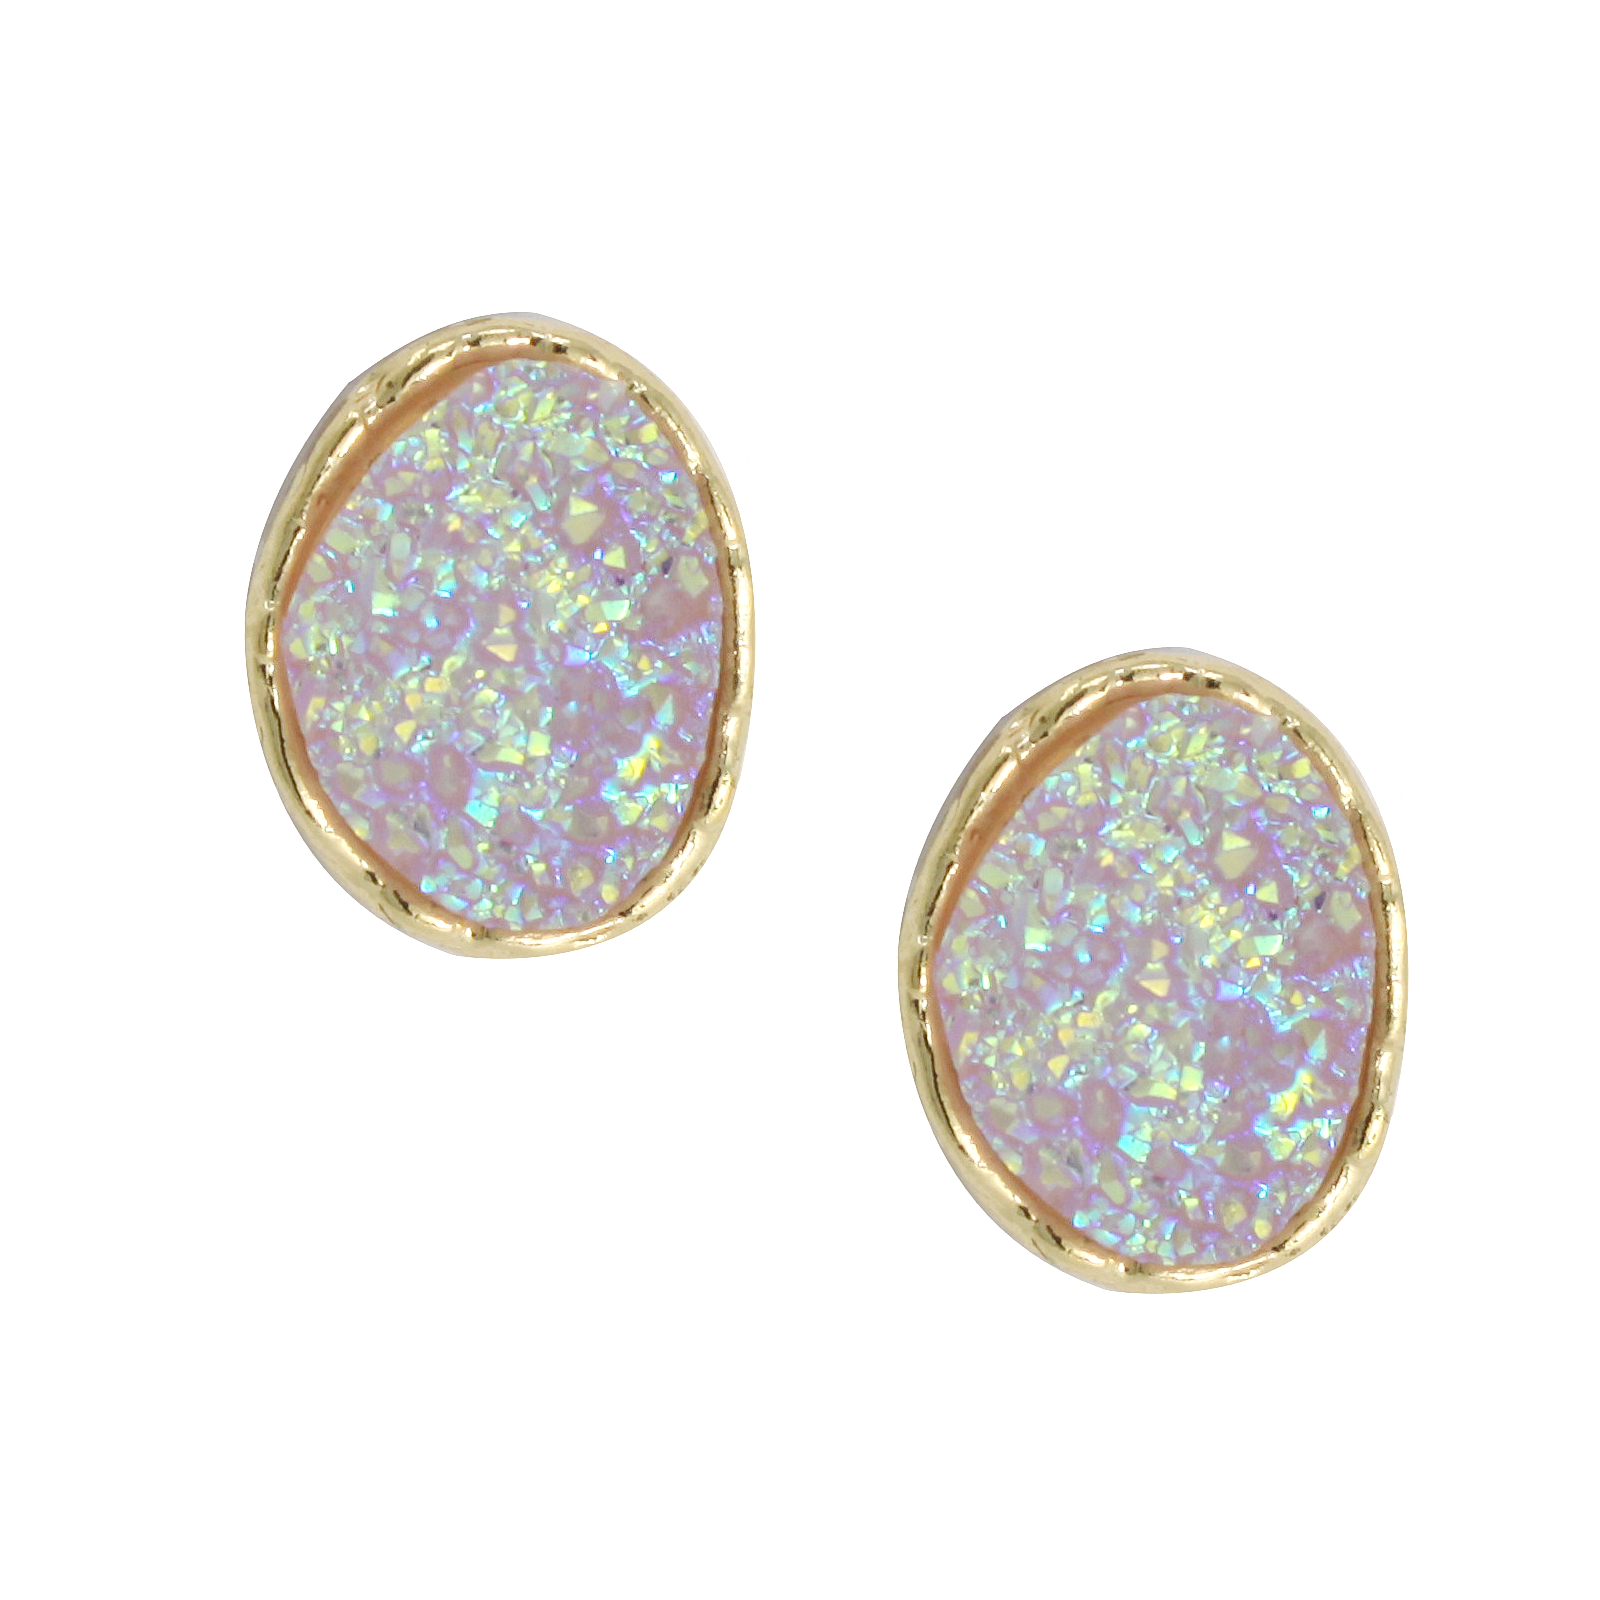 Aurora Borealis Druzy Mini Oval Stud Earrings